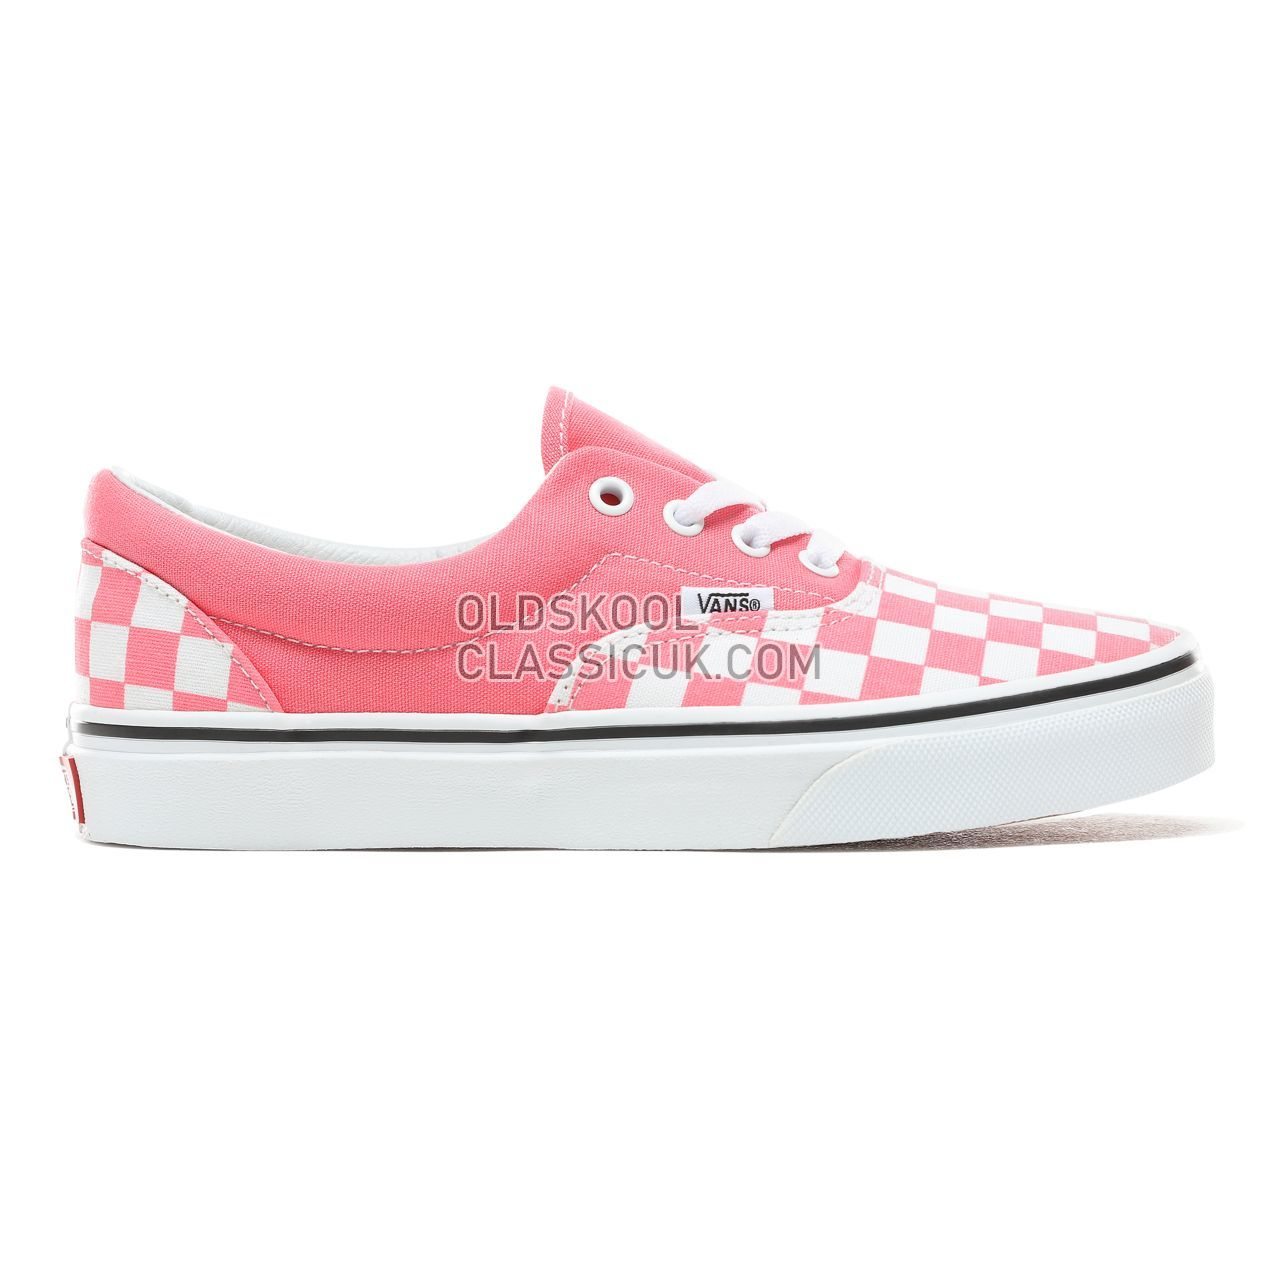 Vans Checkerboard Era Sneakers Womens (Checkerboard) Strawberry Pink/True White VN0A38FRVOX Shoes